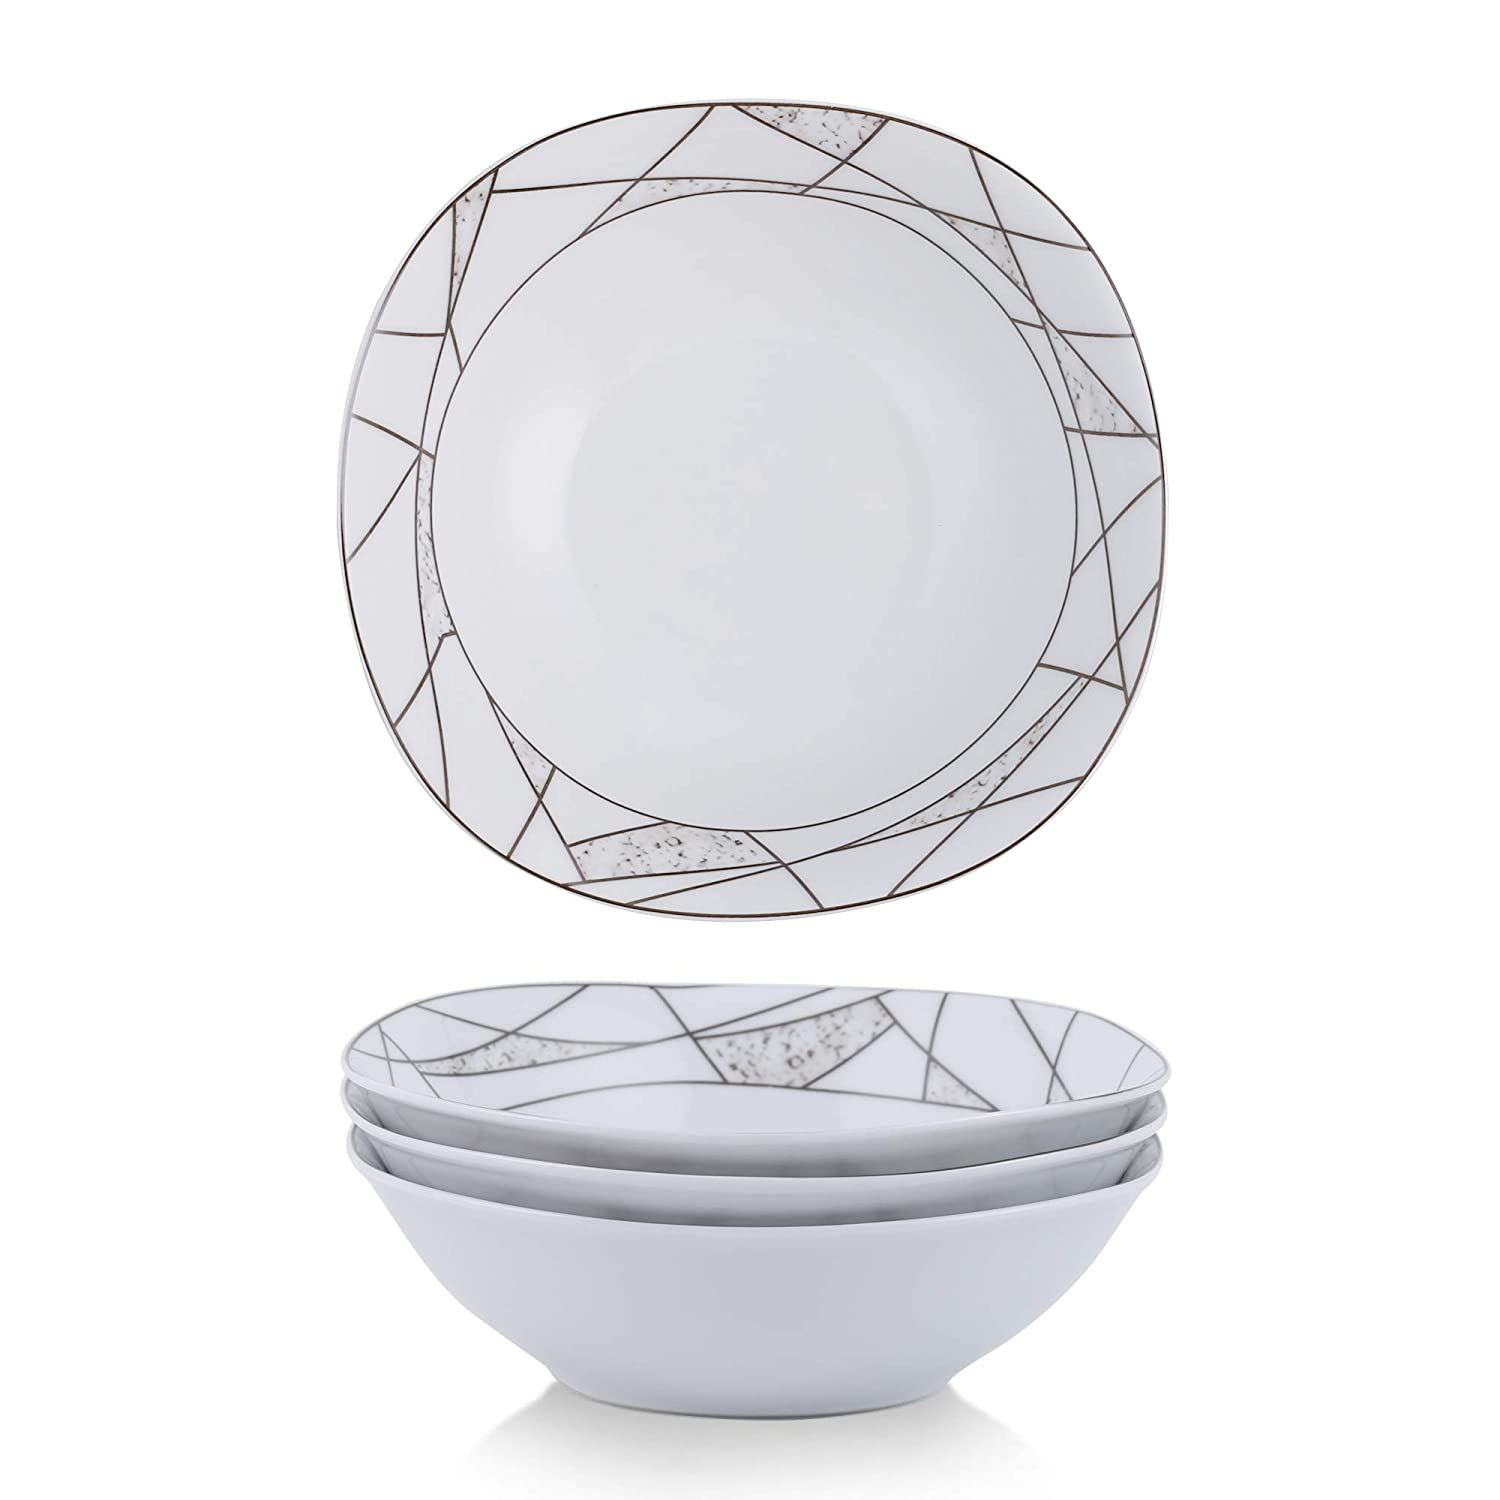 VEWEET 18-Piece Porcelain Dinner Set Ivory White Irregular Patterns Plate Sets with Dinner Plate, Soup Plate, Dessert Plate, Service for 6 ((SERENA Series)